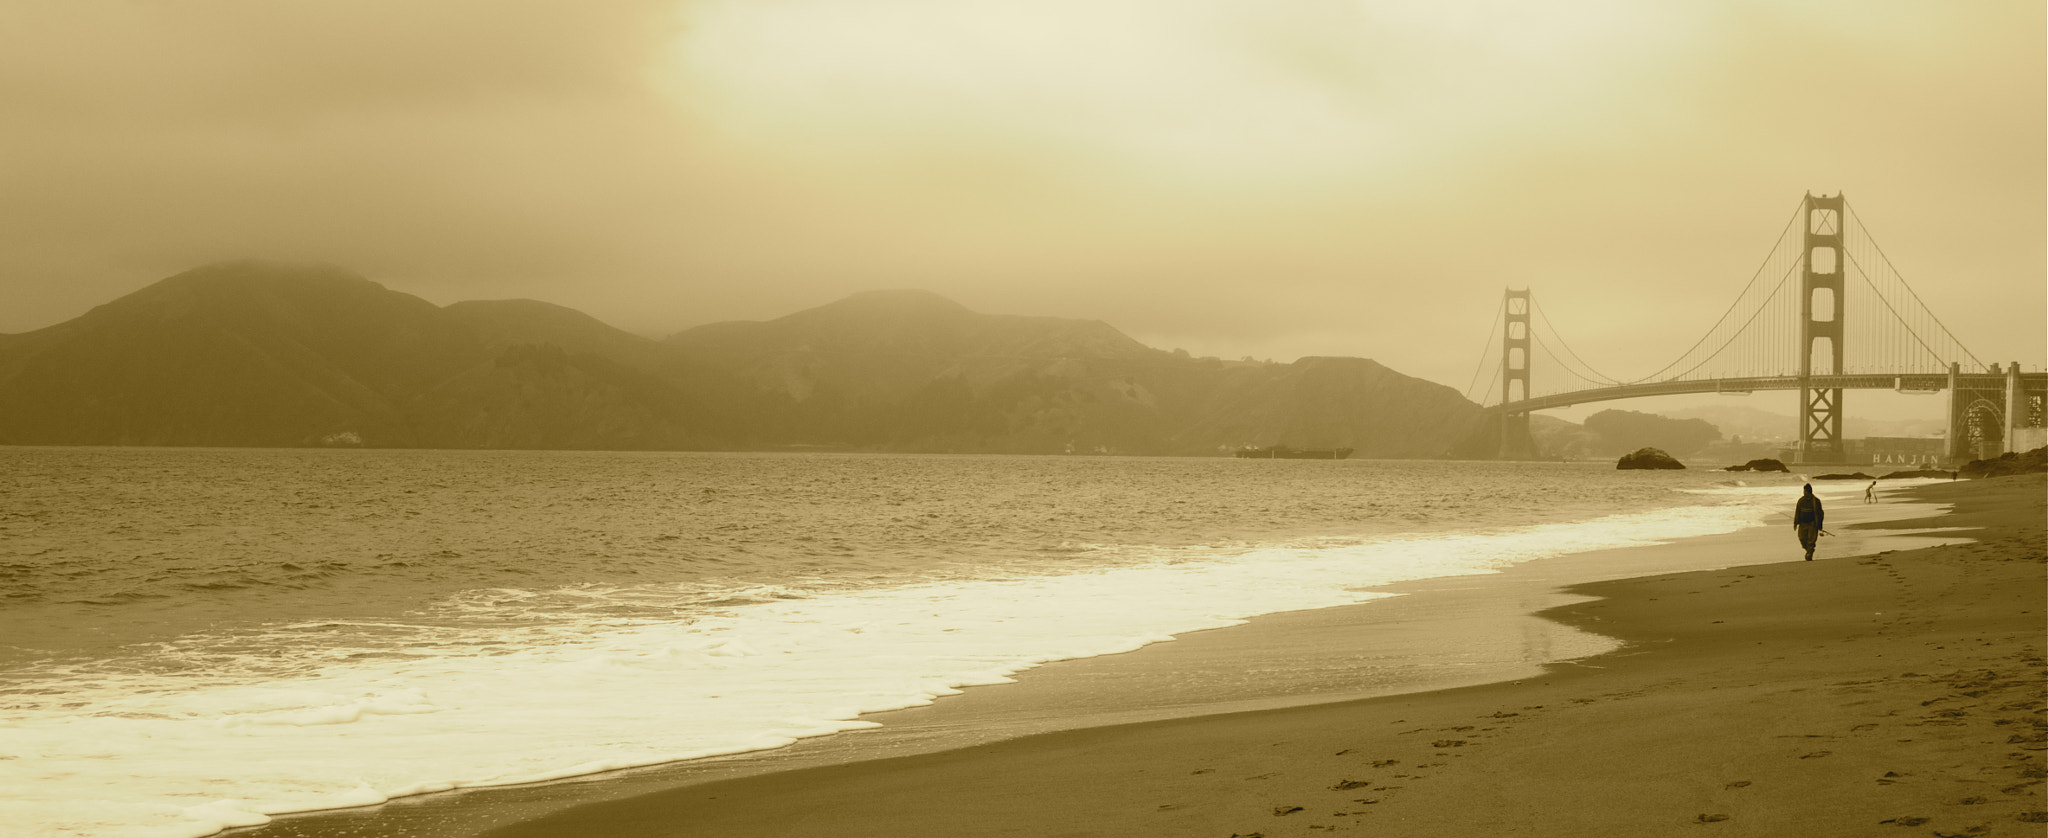 Photograph View from Baker Beach by Denise's photos on 500px